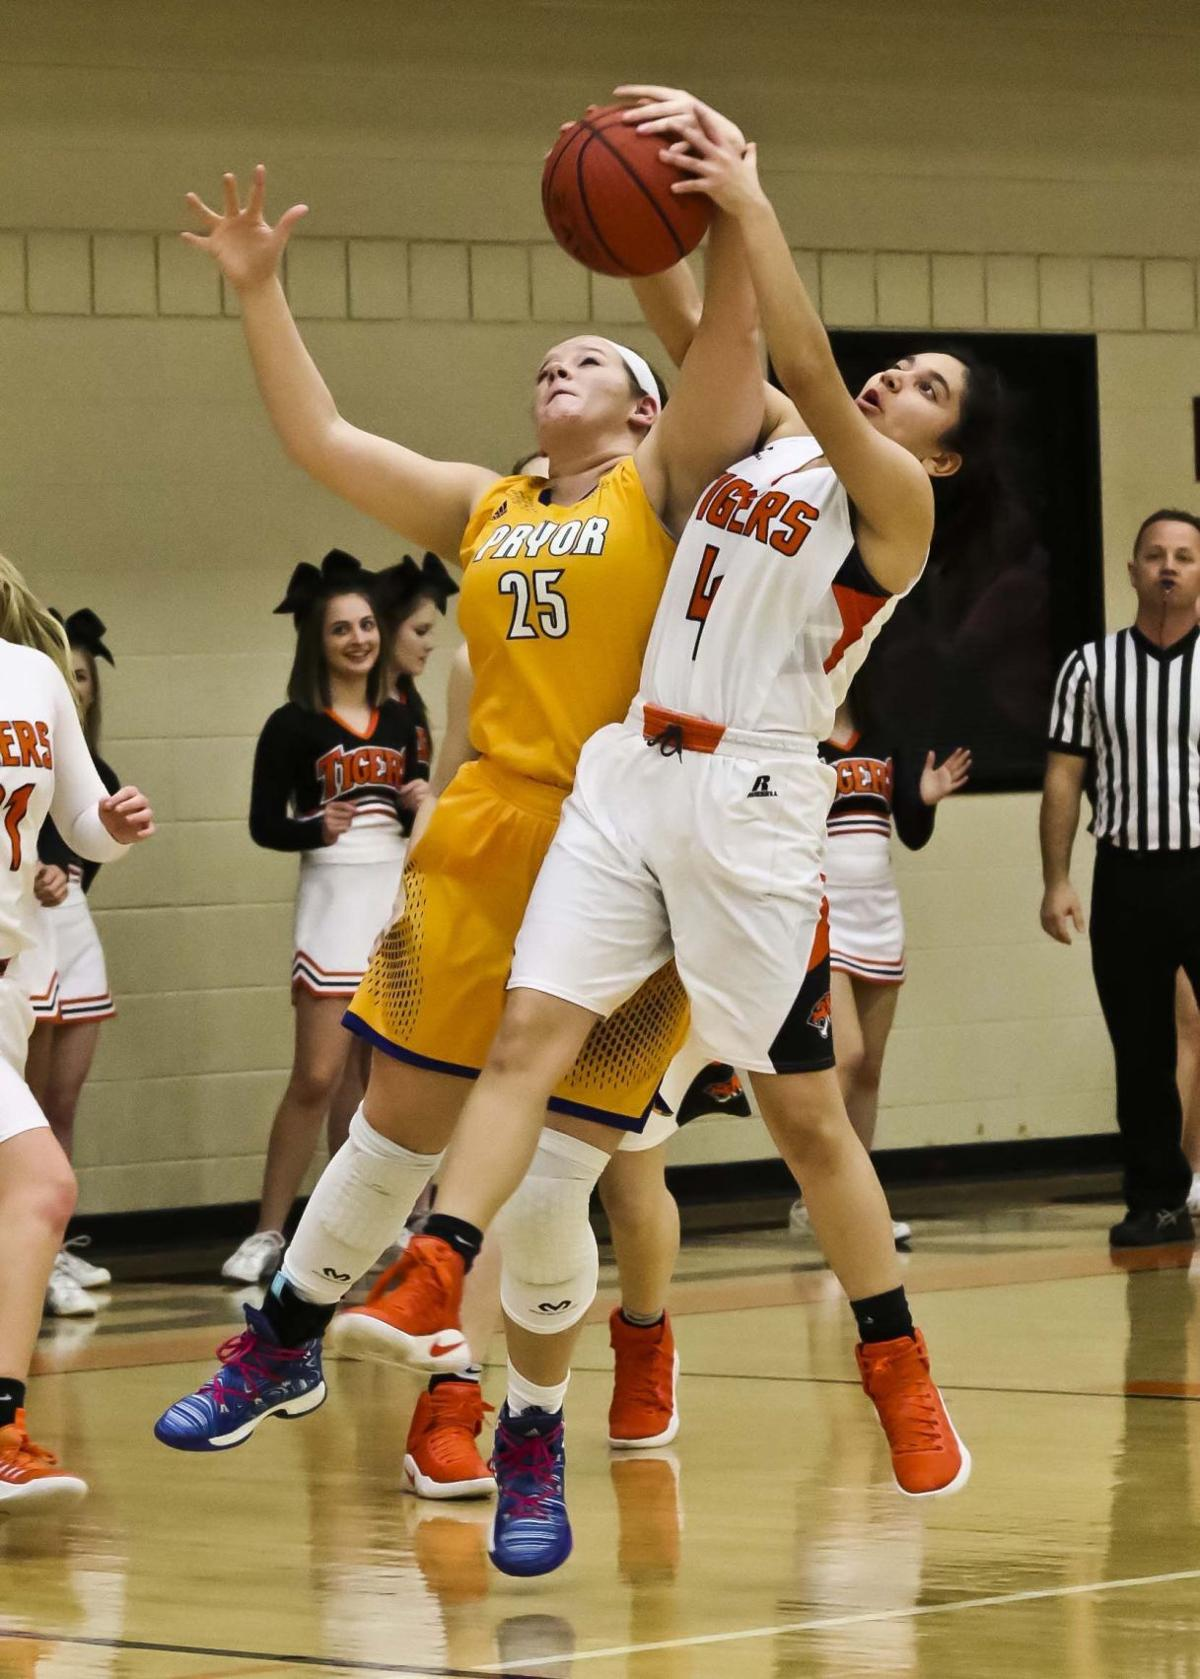 Coweta Lady Tigers Quot Keep Getting Better Quot On The Hardwood